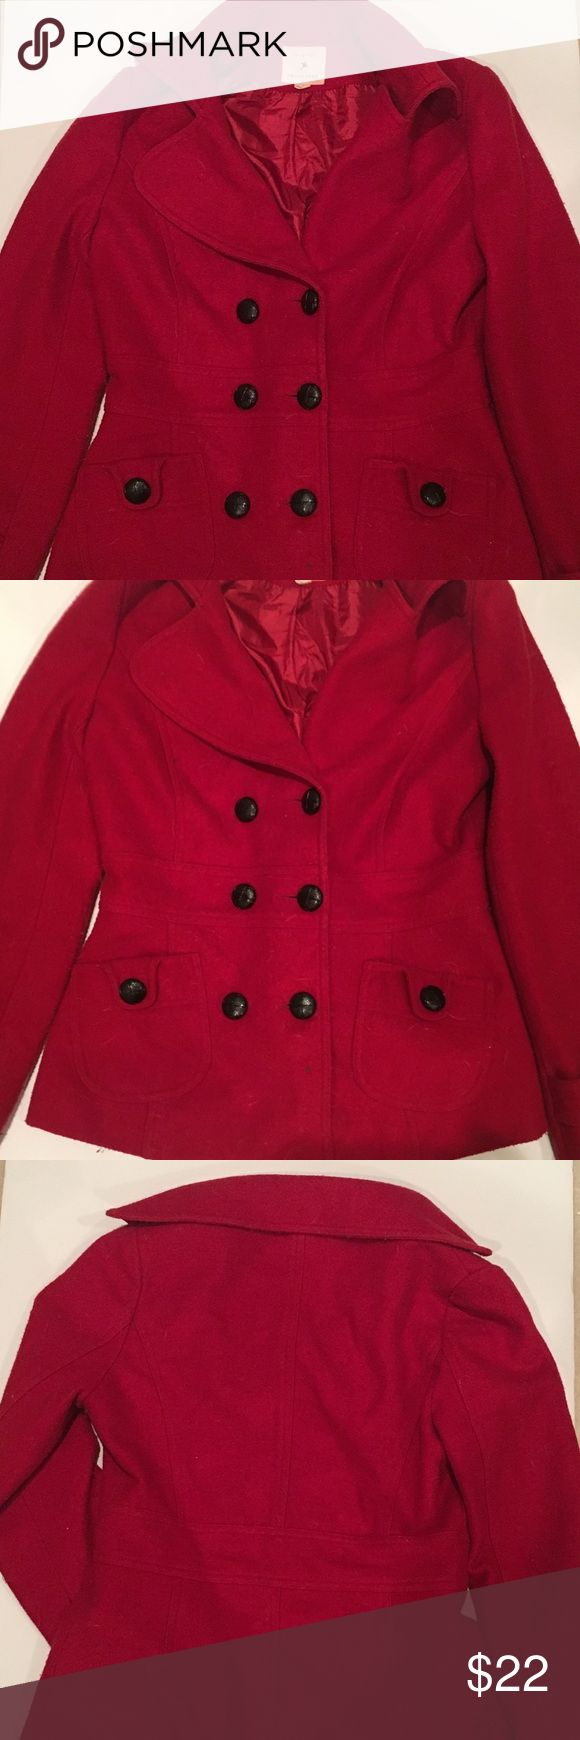 Forever 21 Red Pea Coat Forever 21 red peacoat size L. Super duper warm and cozy ☺️ the shell is 25% wool, 75% polyester. Features 2 shallow pockets in front. In good condition! Not a single button out of place. Forever 21 Jackets & Coats Pea Coats